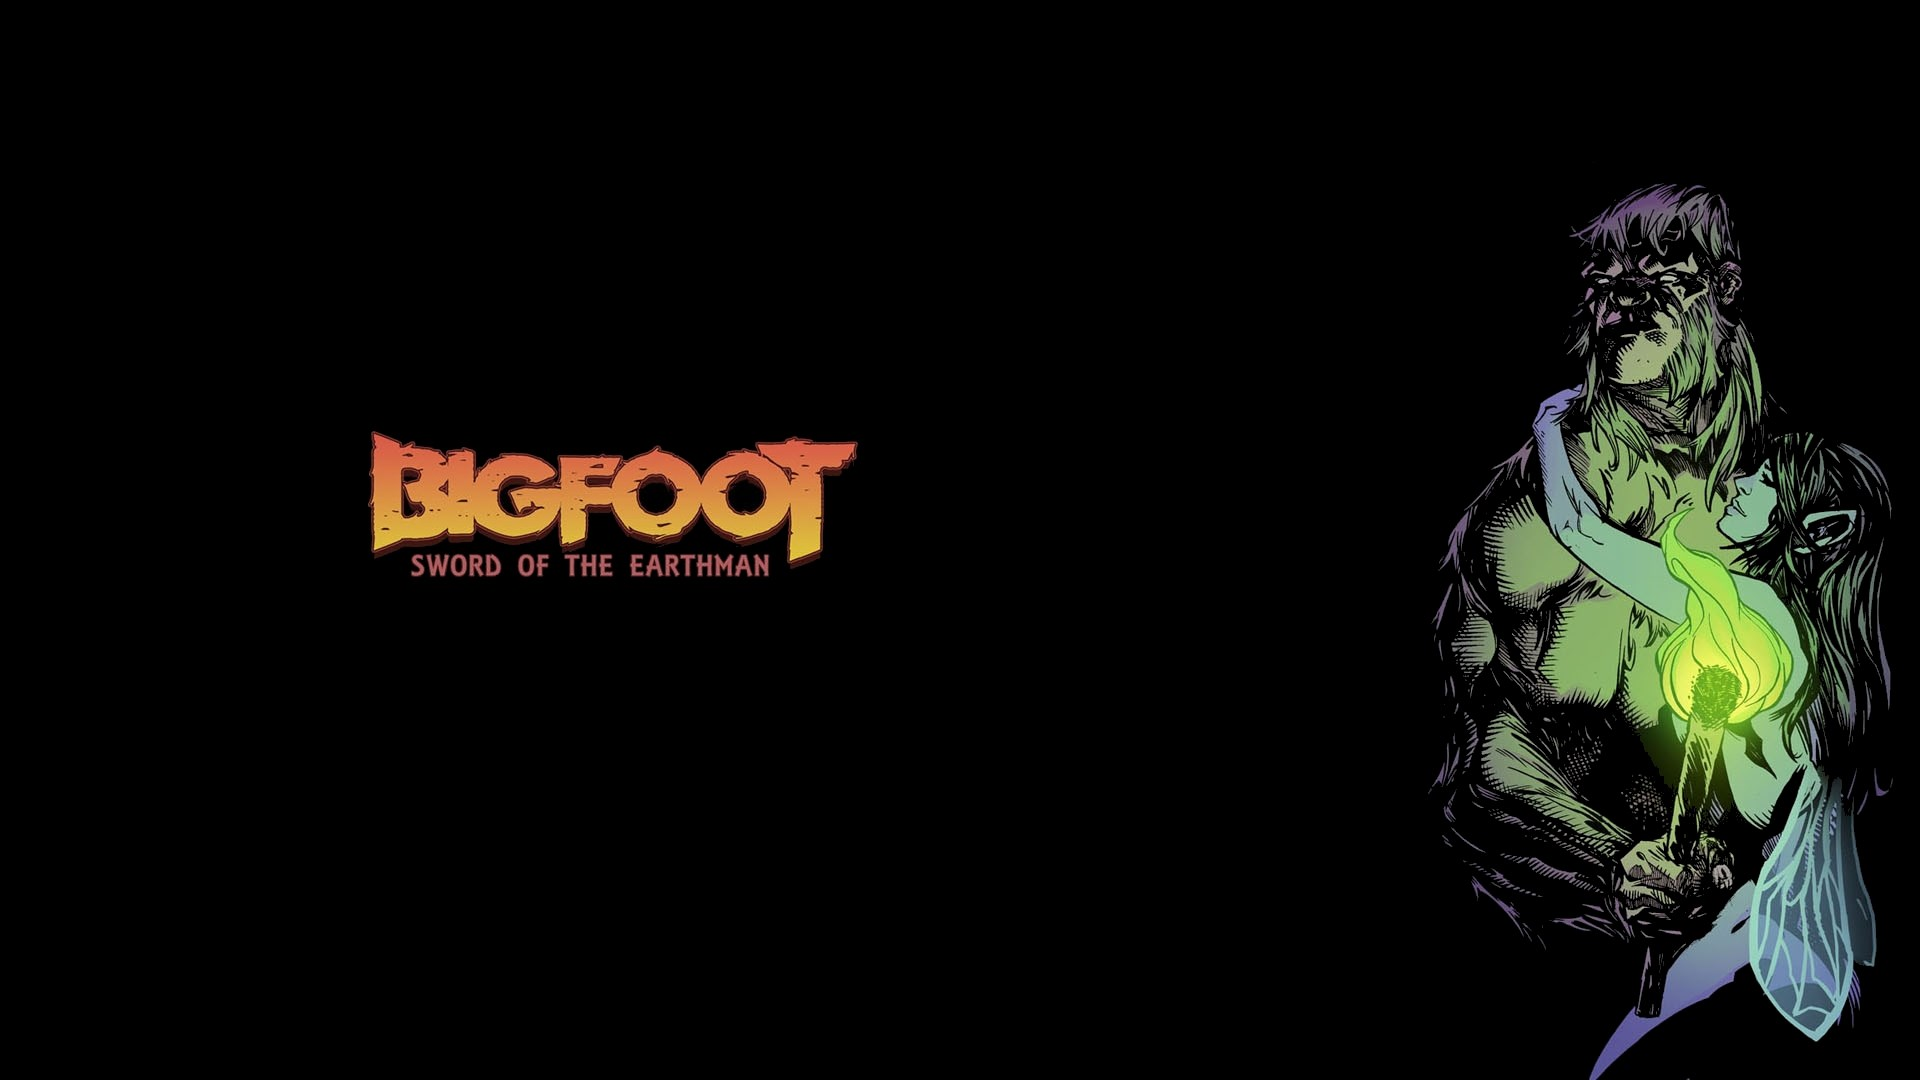 HQ-Definition-Desktop-bigfoot-image-Welsh-Gill-1920x1080-wallpaper-wpc9206049